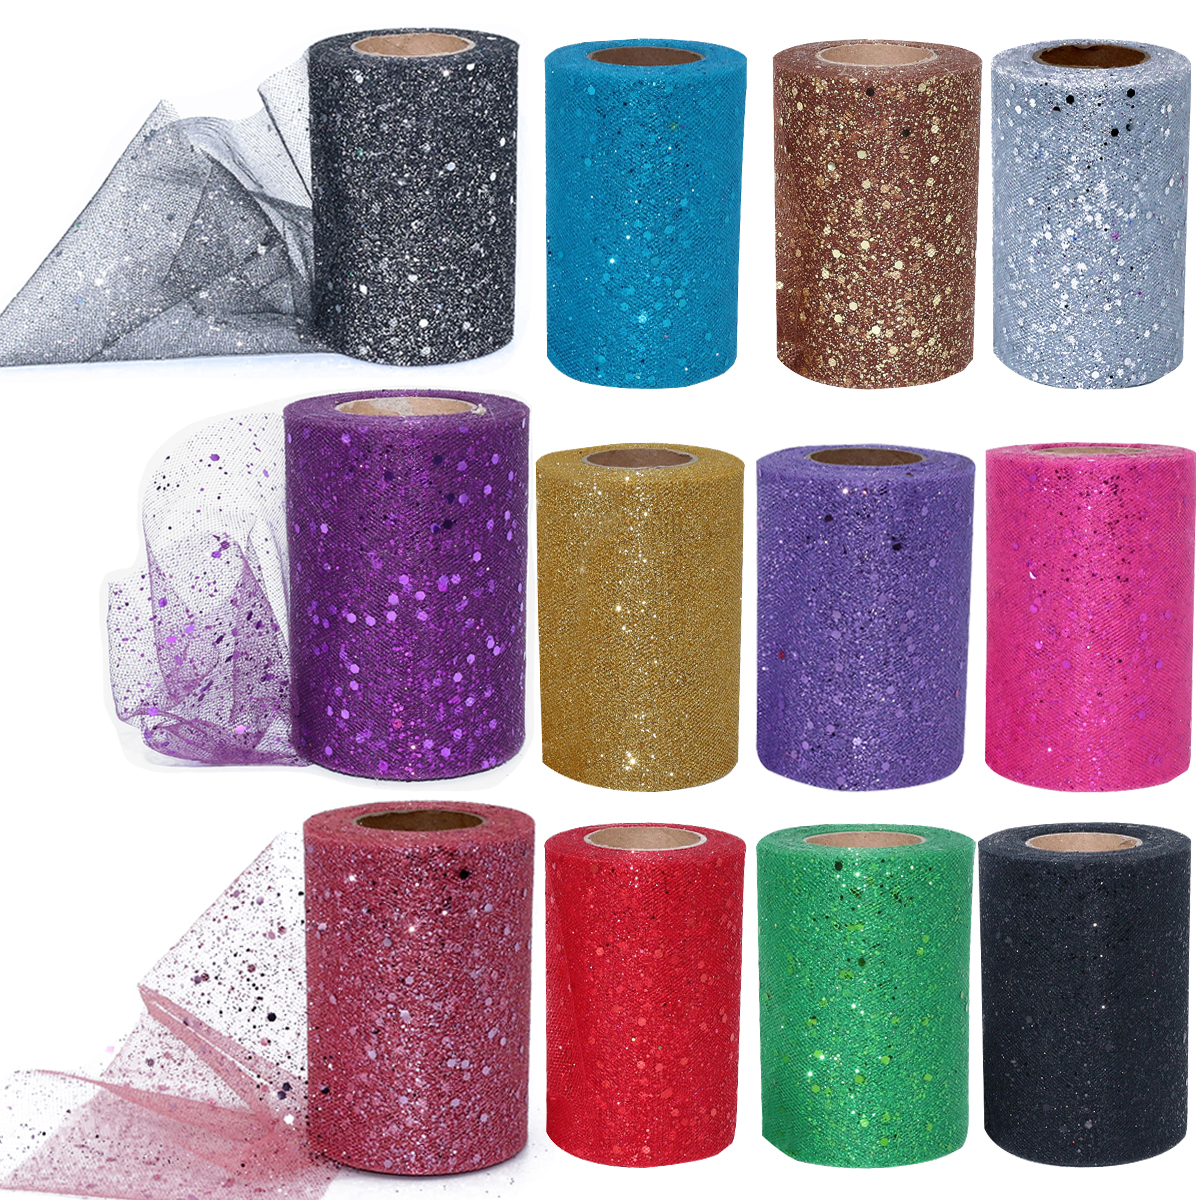 Taoup 5cm 15cm 30cm Organza Tulle Roll Wedding Party Decor Birthday Babyshower Sequin Mesh Fabric Ribbon 25Yards DIY